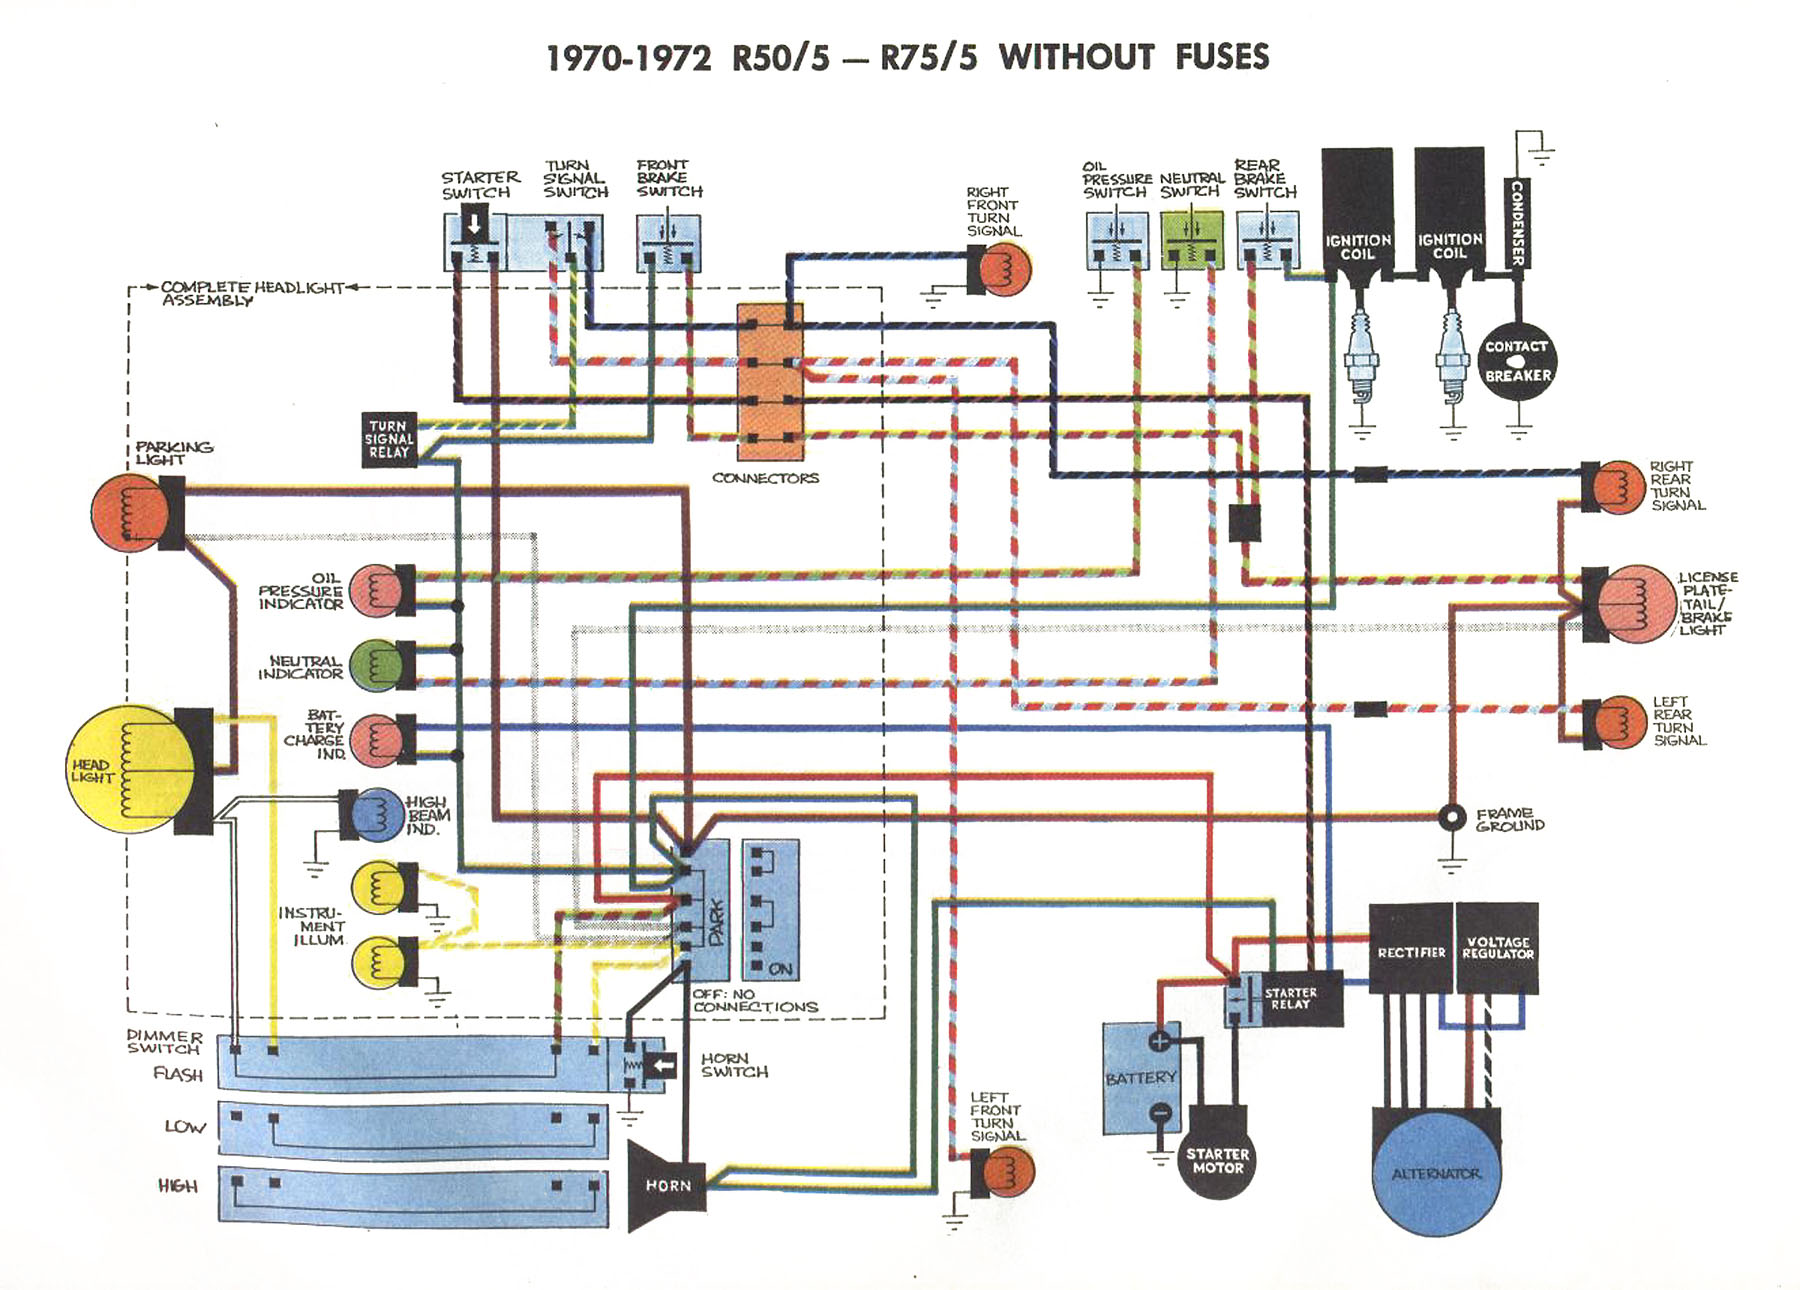 5 United / Articles :: Wiring Diagrams